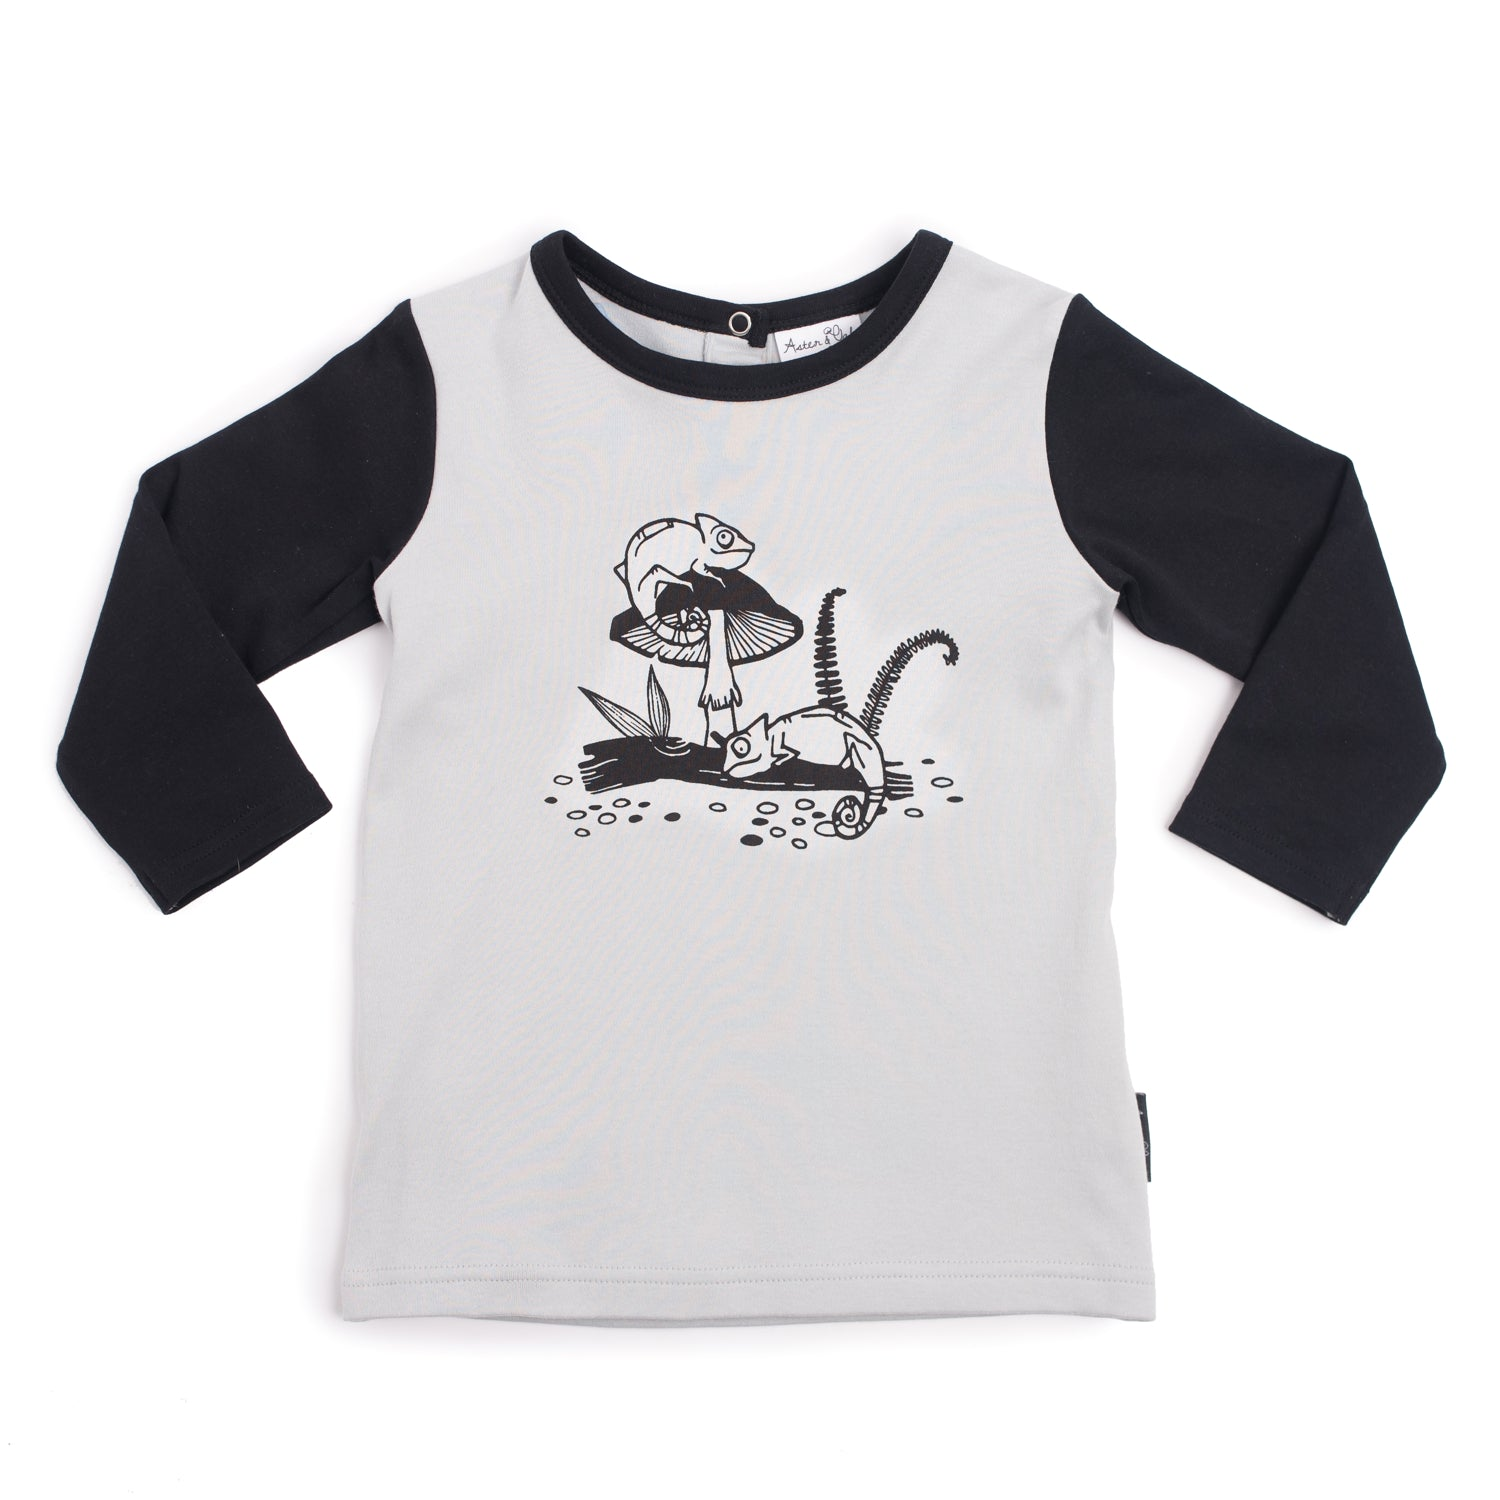 Aster & Oak Chameleon Print Raglan Tee boys top black and grey